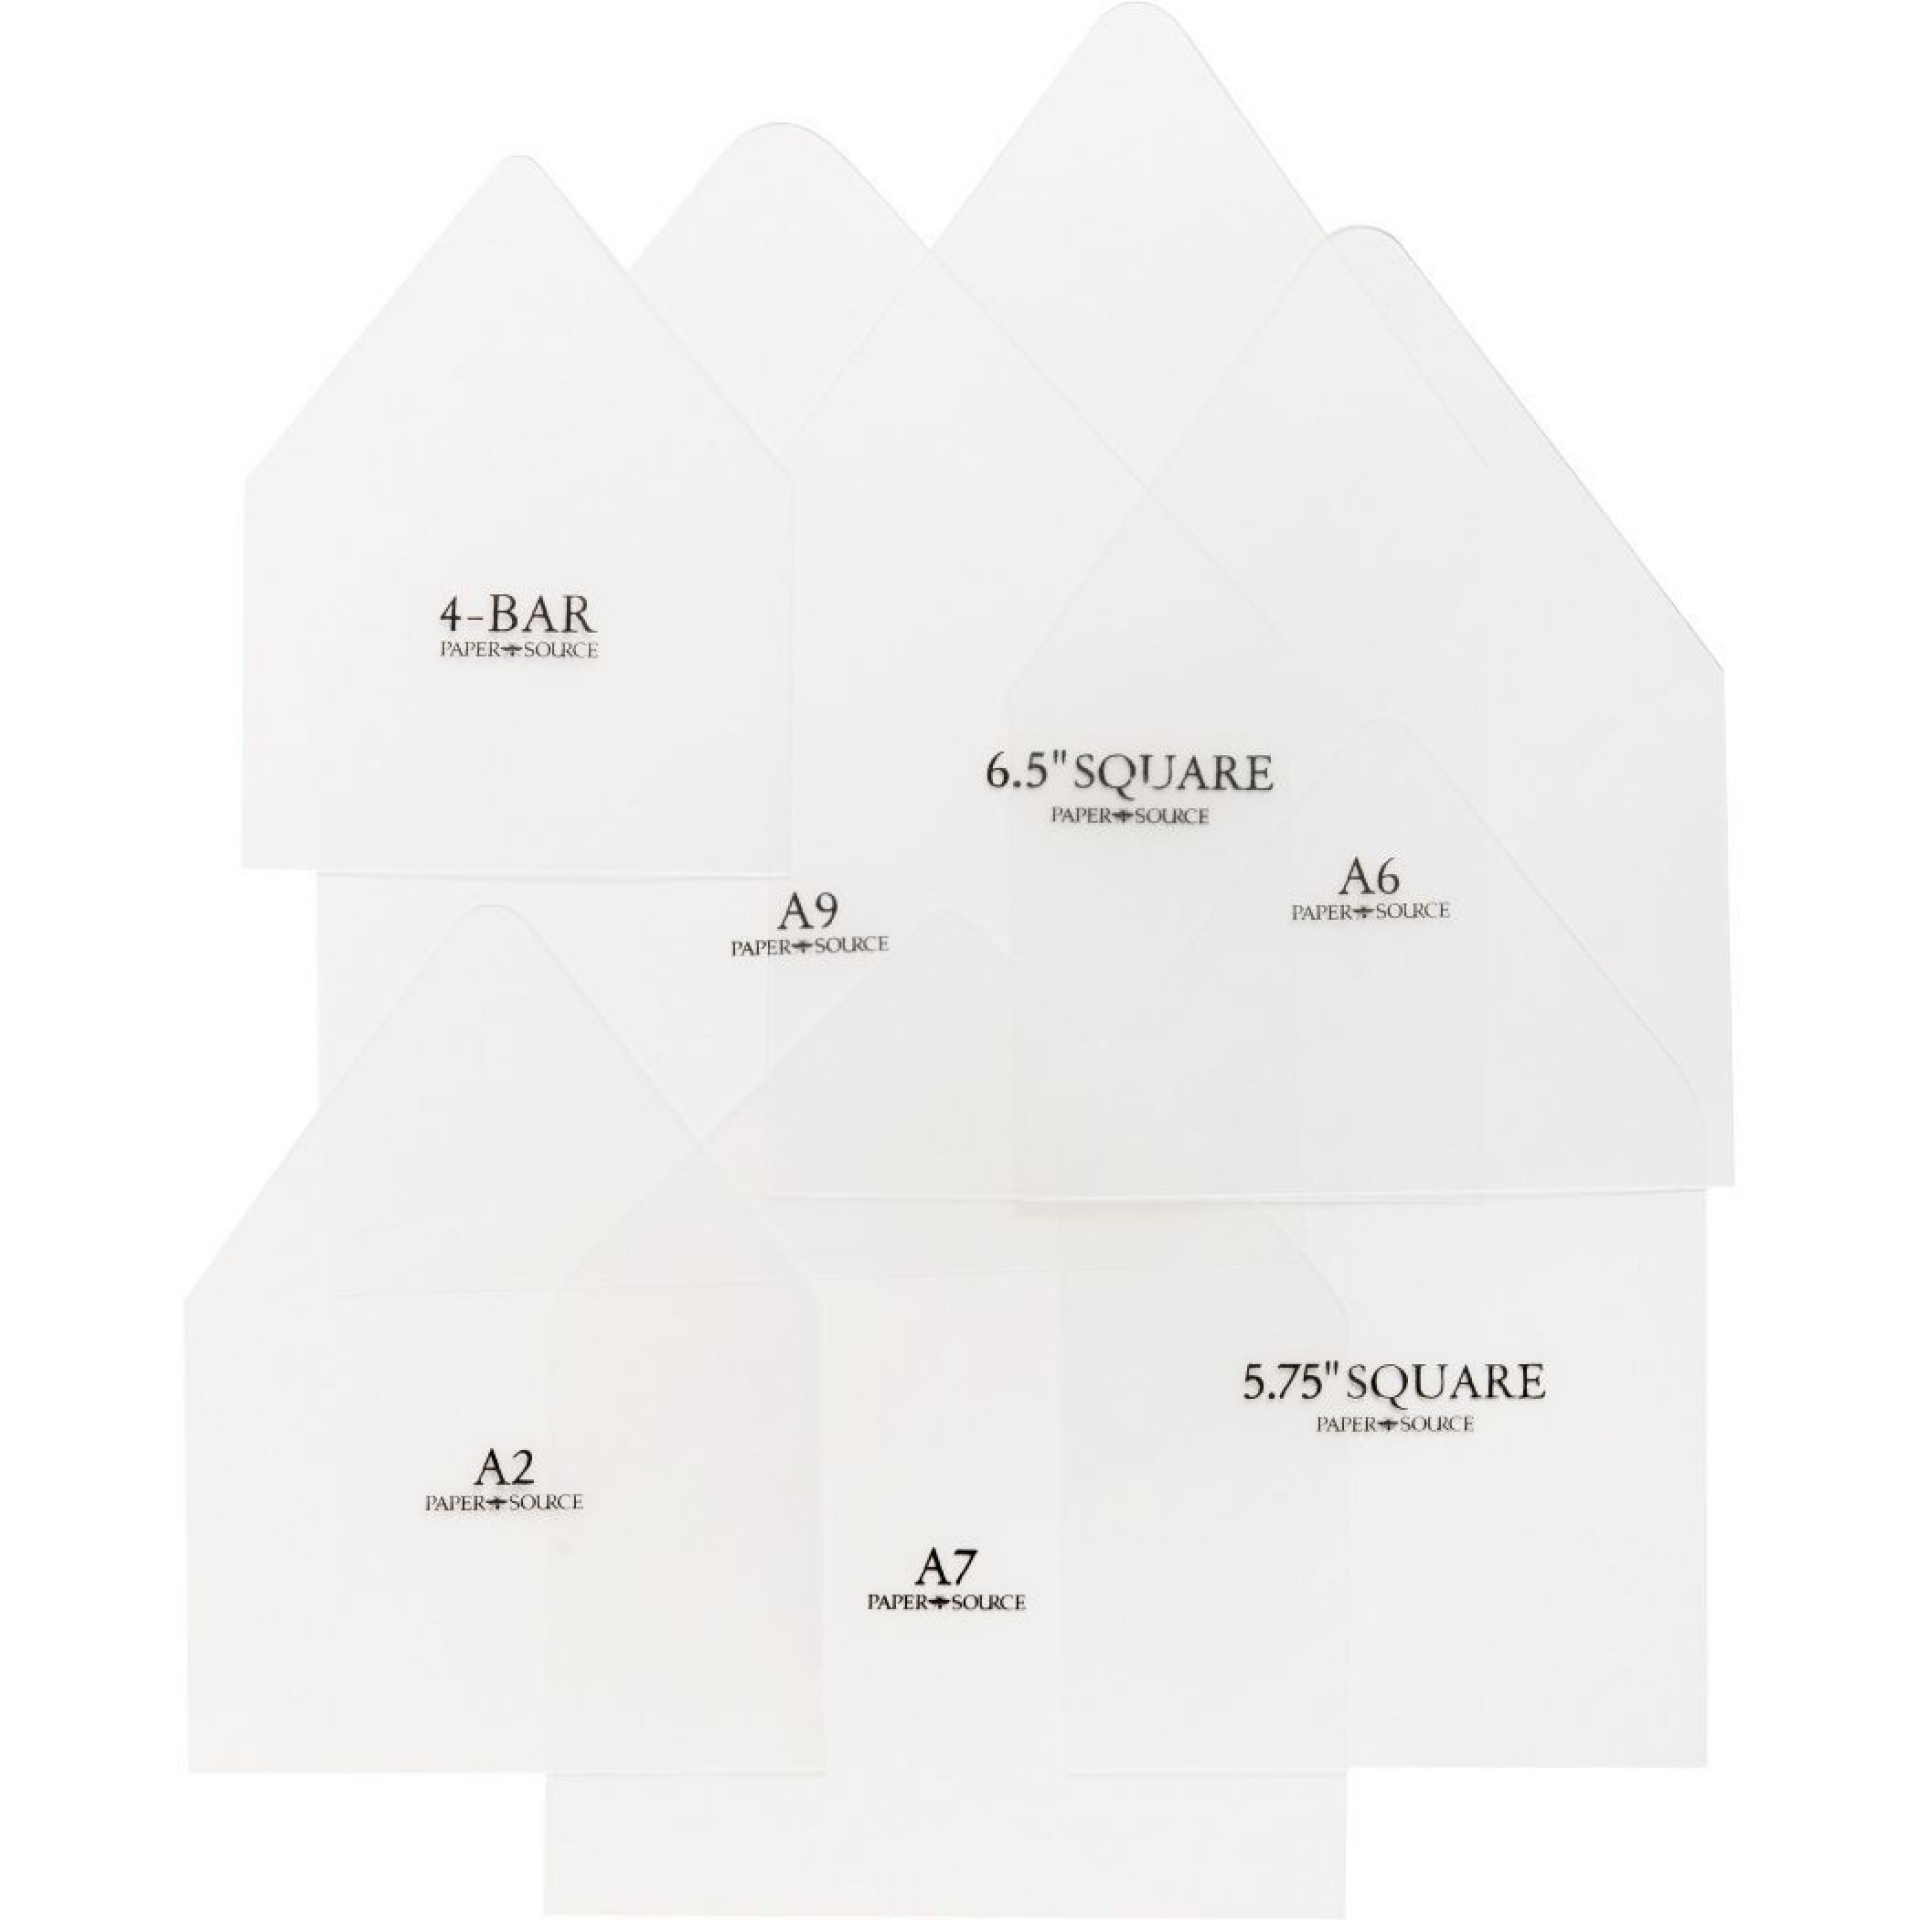 007 Archaicawful Paper Source A7 Envelope Liner Template High Definition 1920